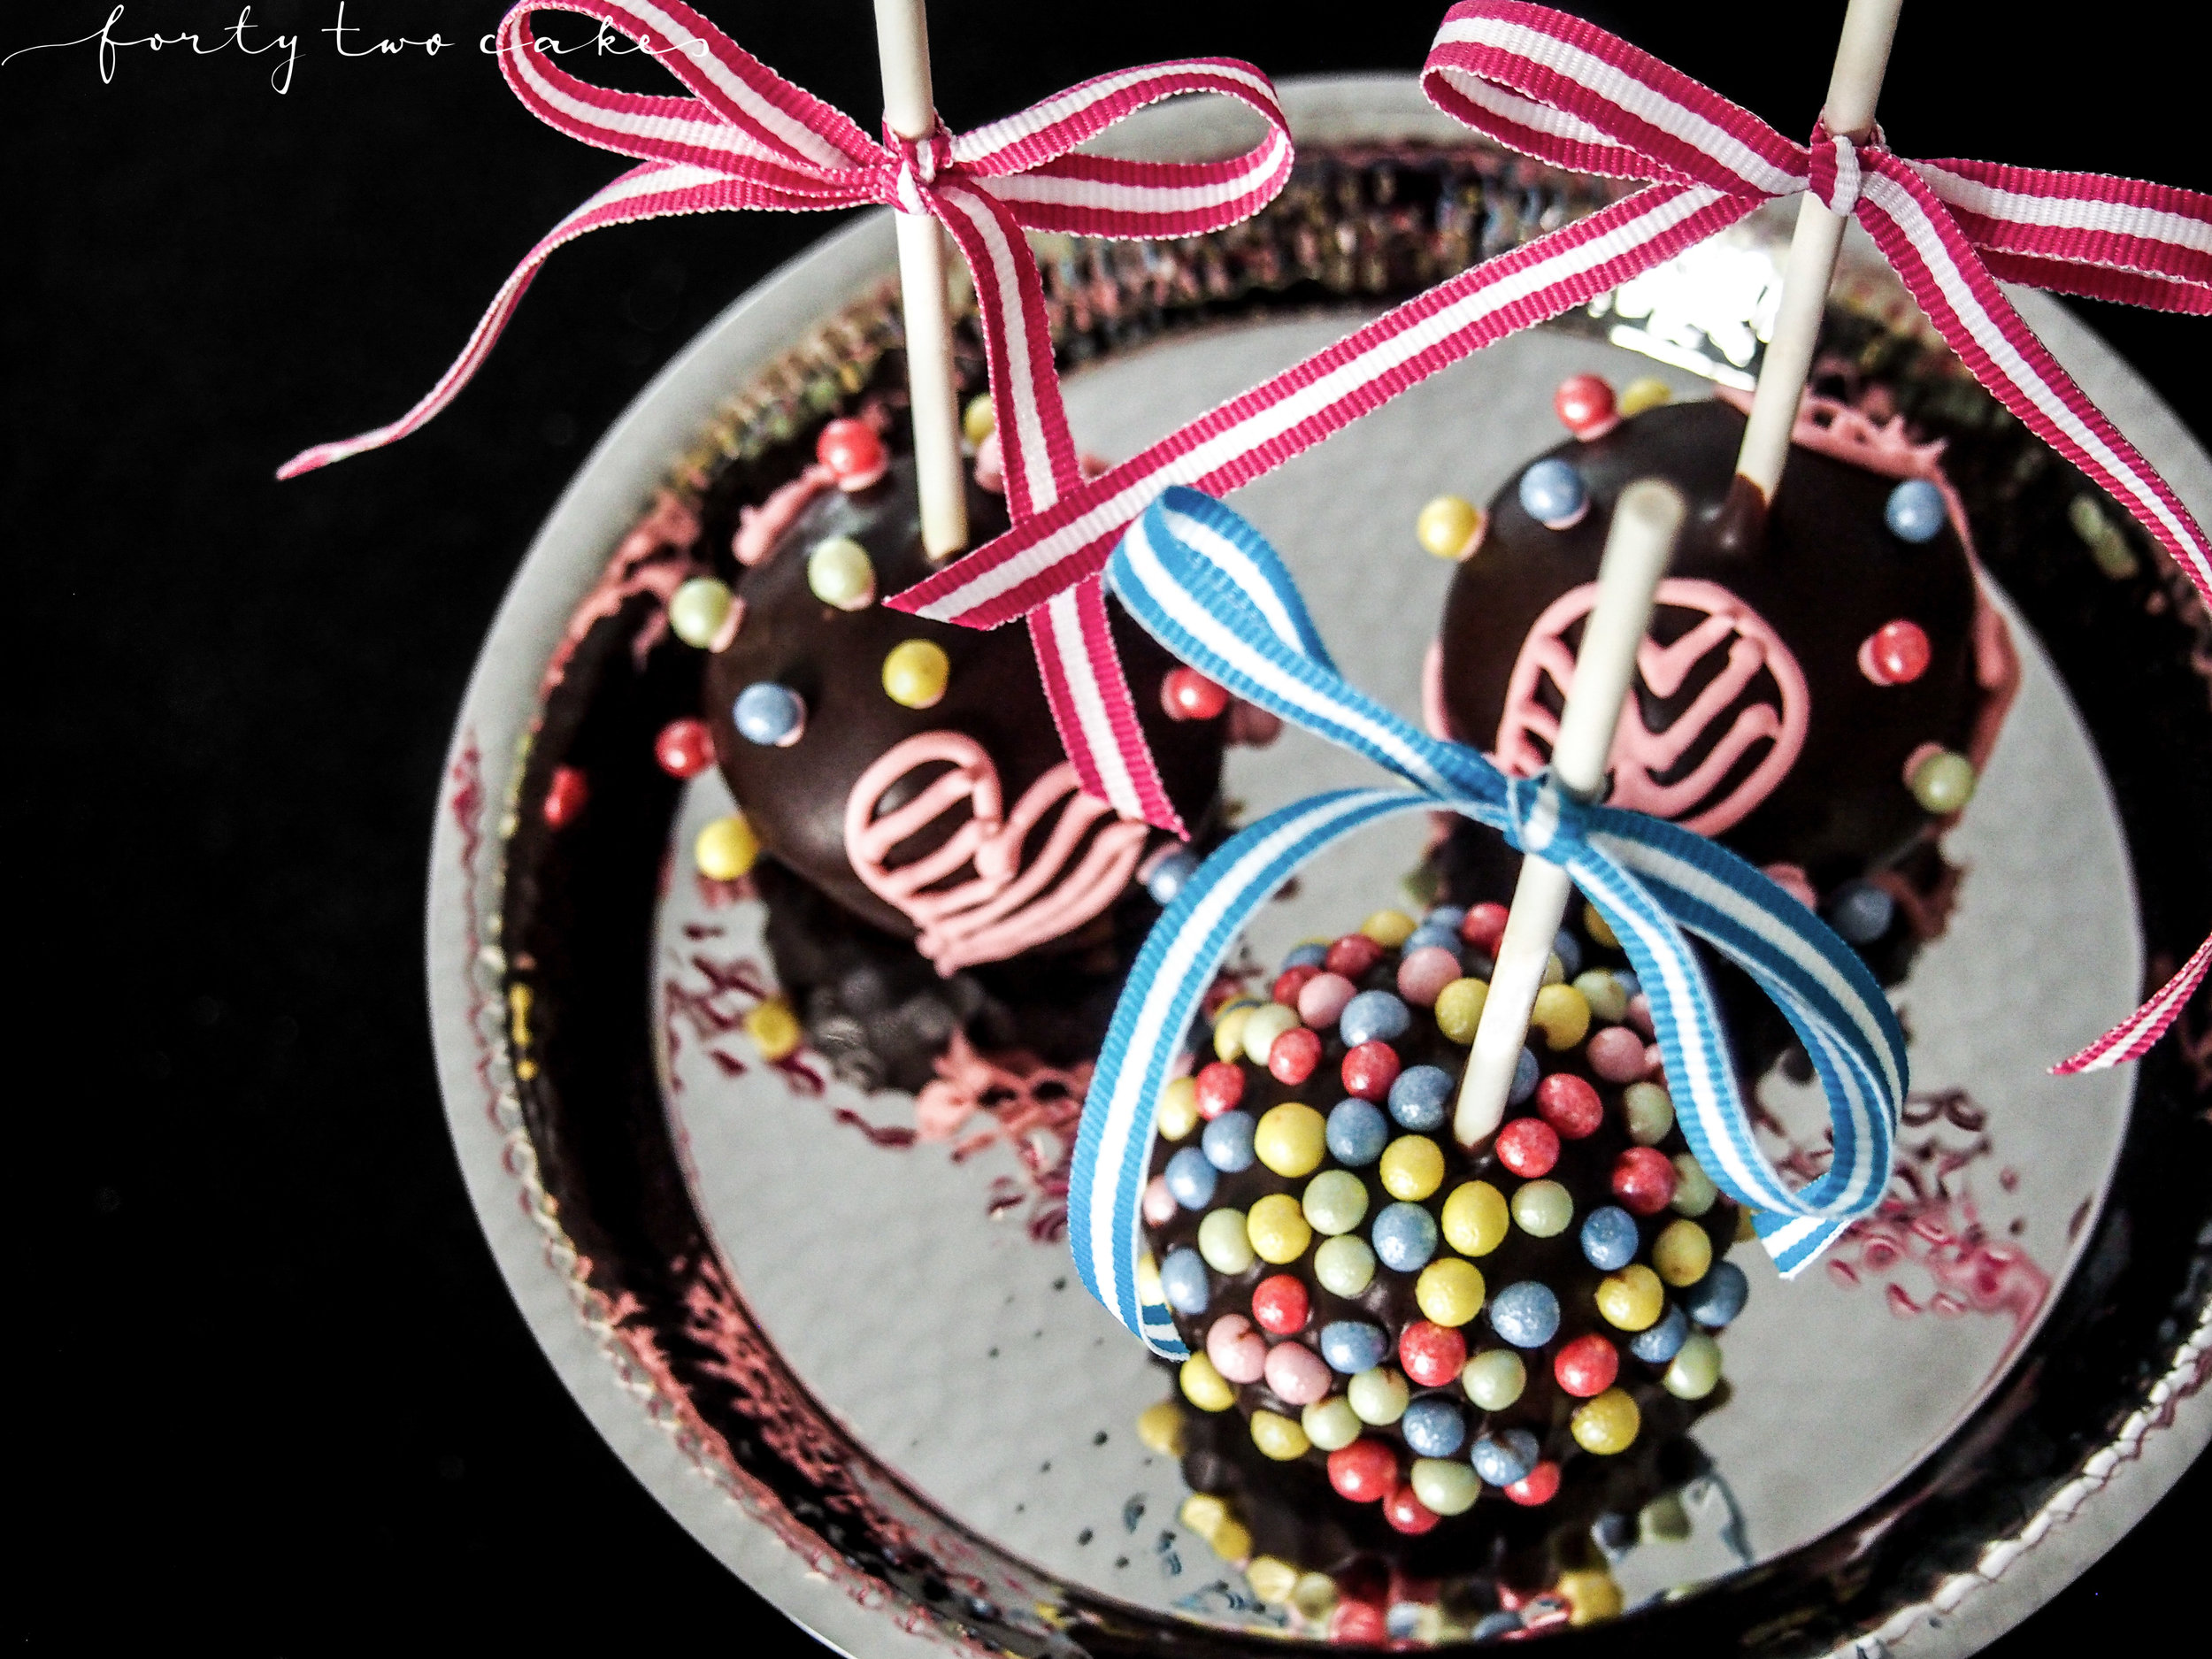 Forty-Two Cakes - Small Things-05.jpg